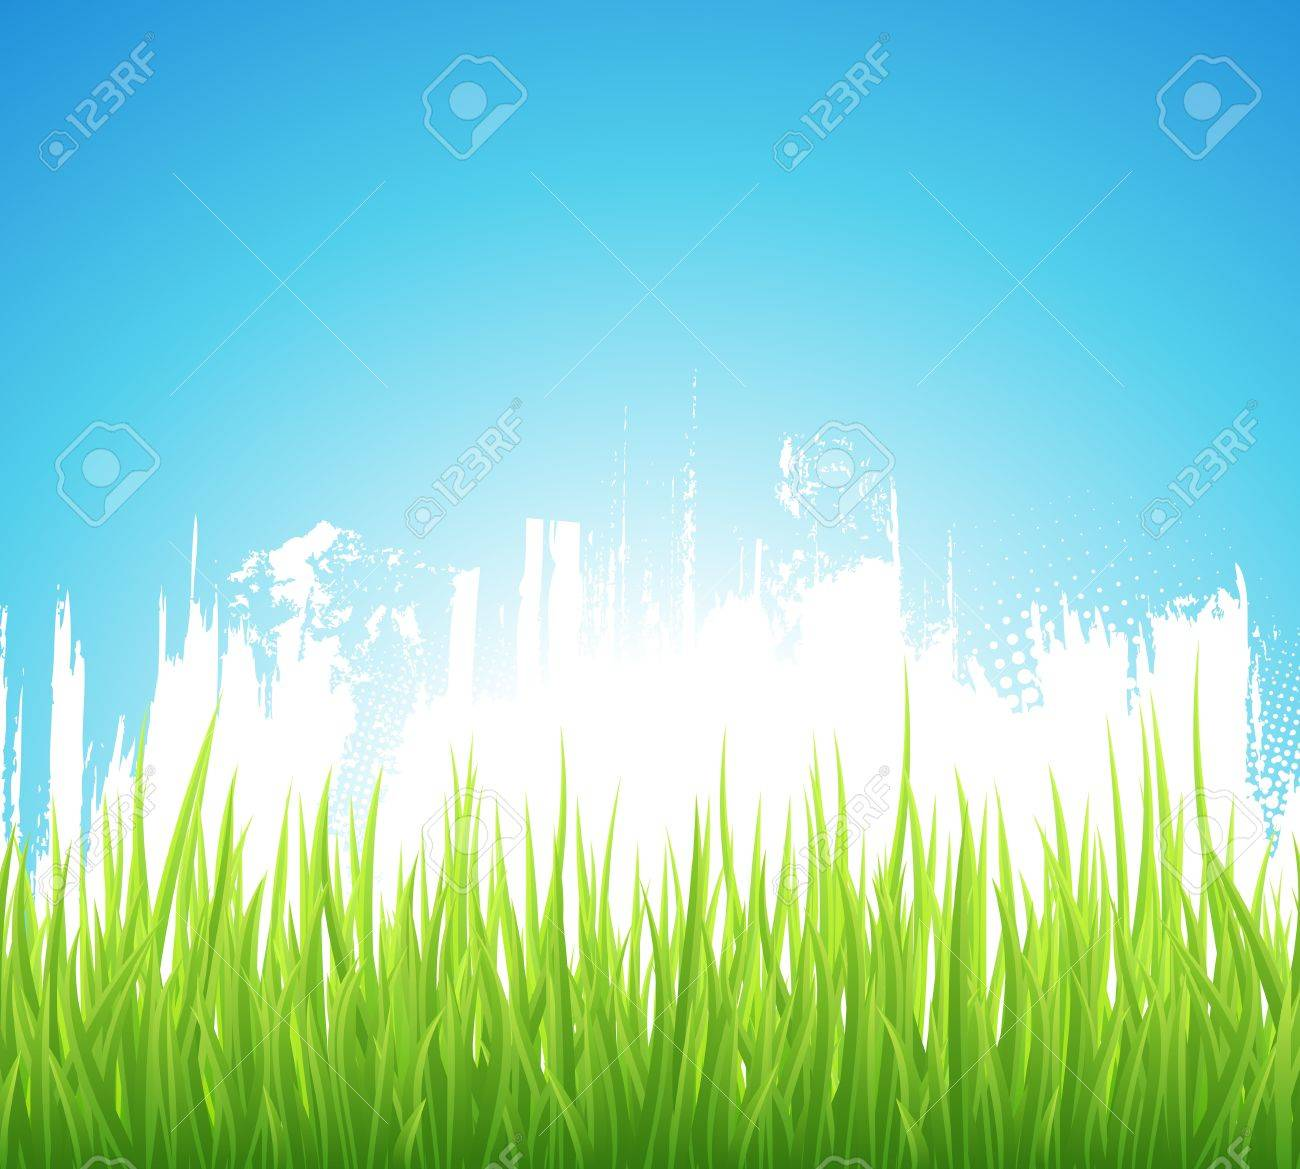 Green Spring background. Grunge design. Abstract backdrop with green grass. Stock Vector - 14799056